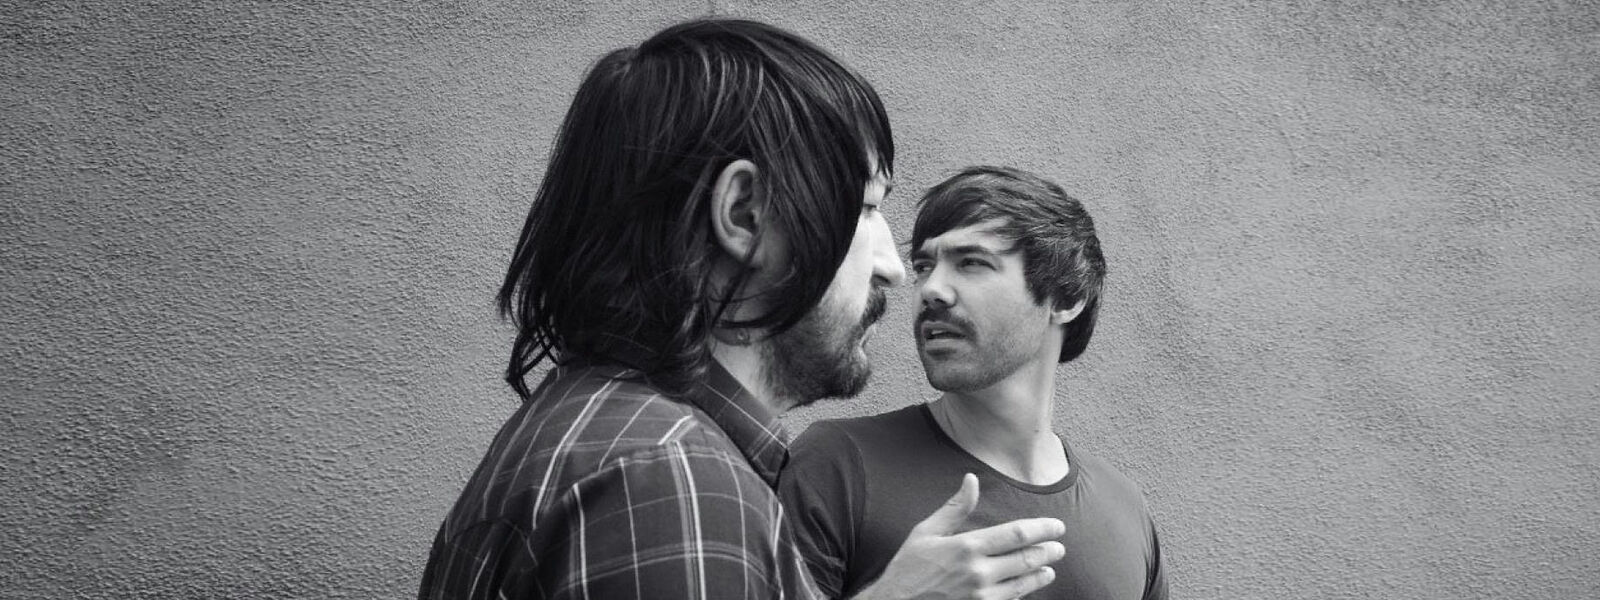 Death From Above 1979